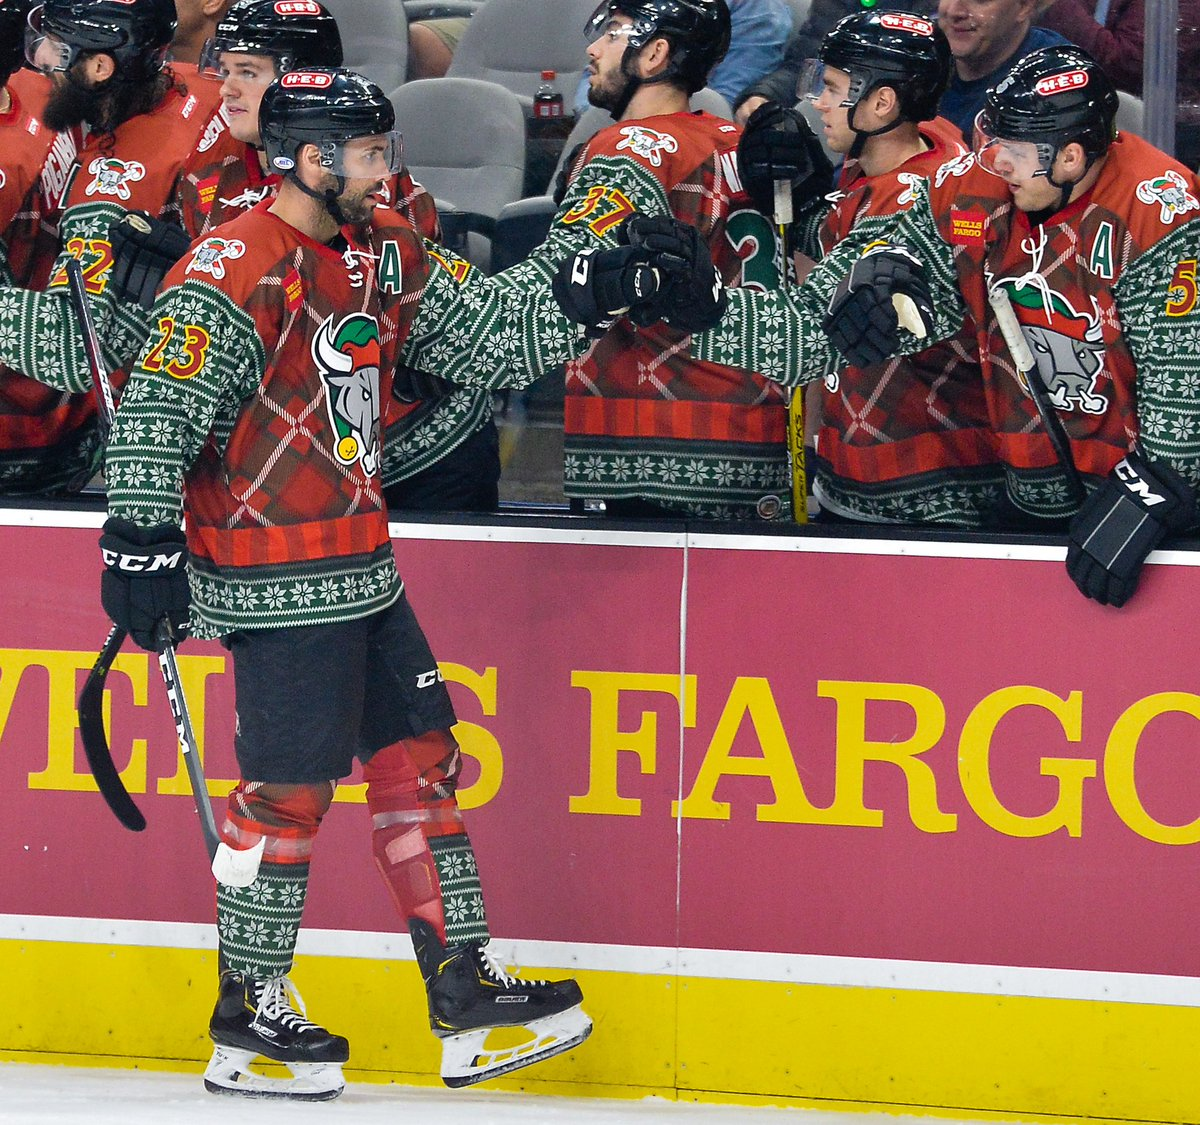 These ugly sweaters are the very best gift that the @sarampage could have given us. 🎁 https://t.co/EN4c8J1rKh